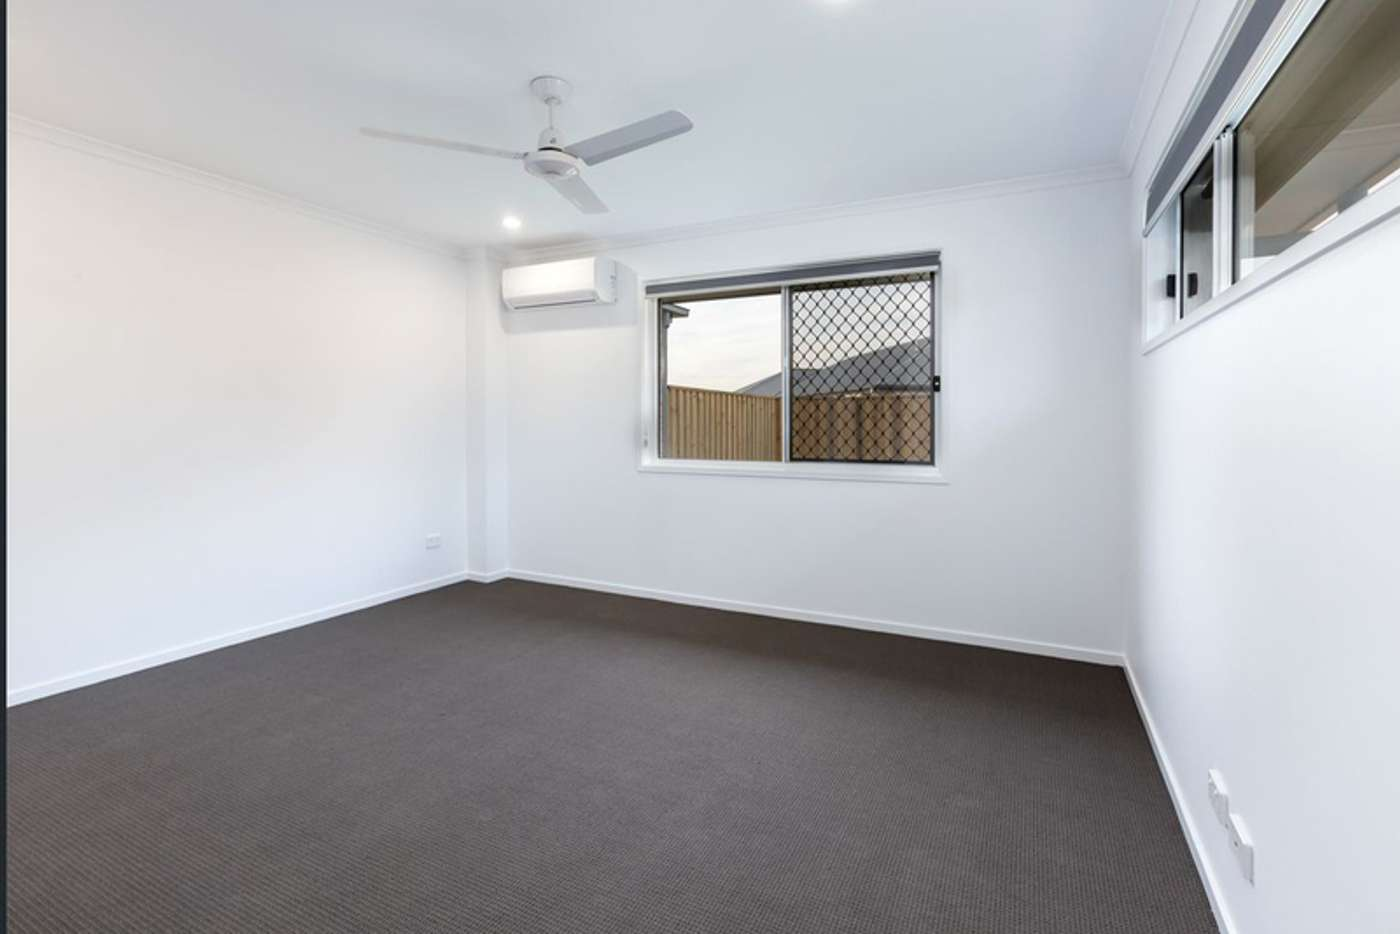 Fifth view of Homely house listing, 1/18 Proteus Street, Burpengary QLD 4505